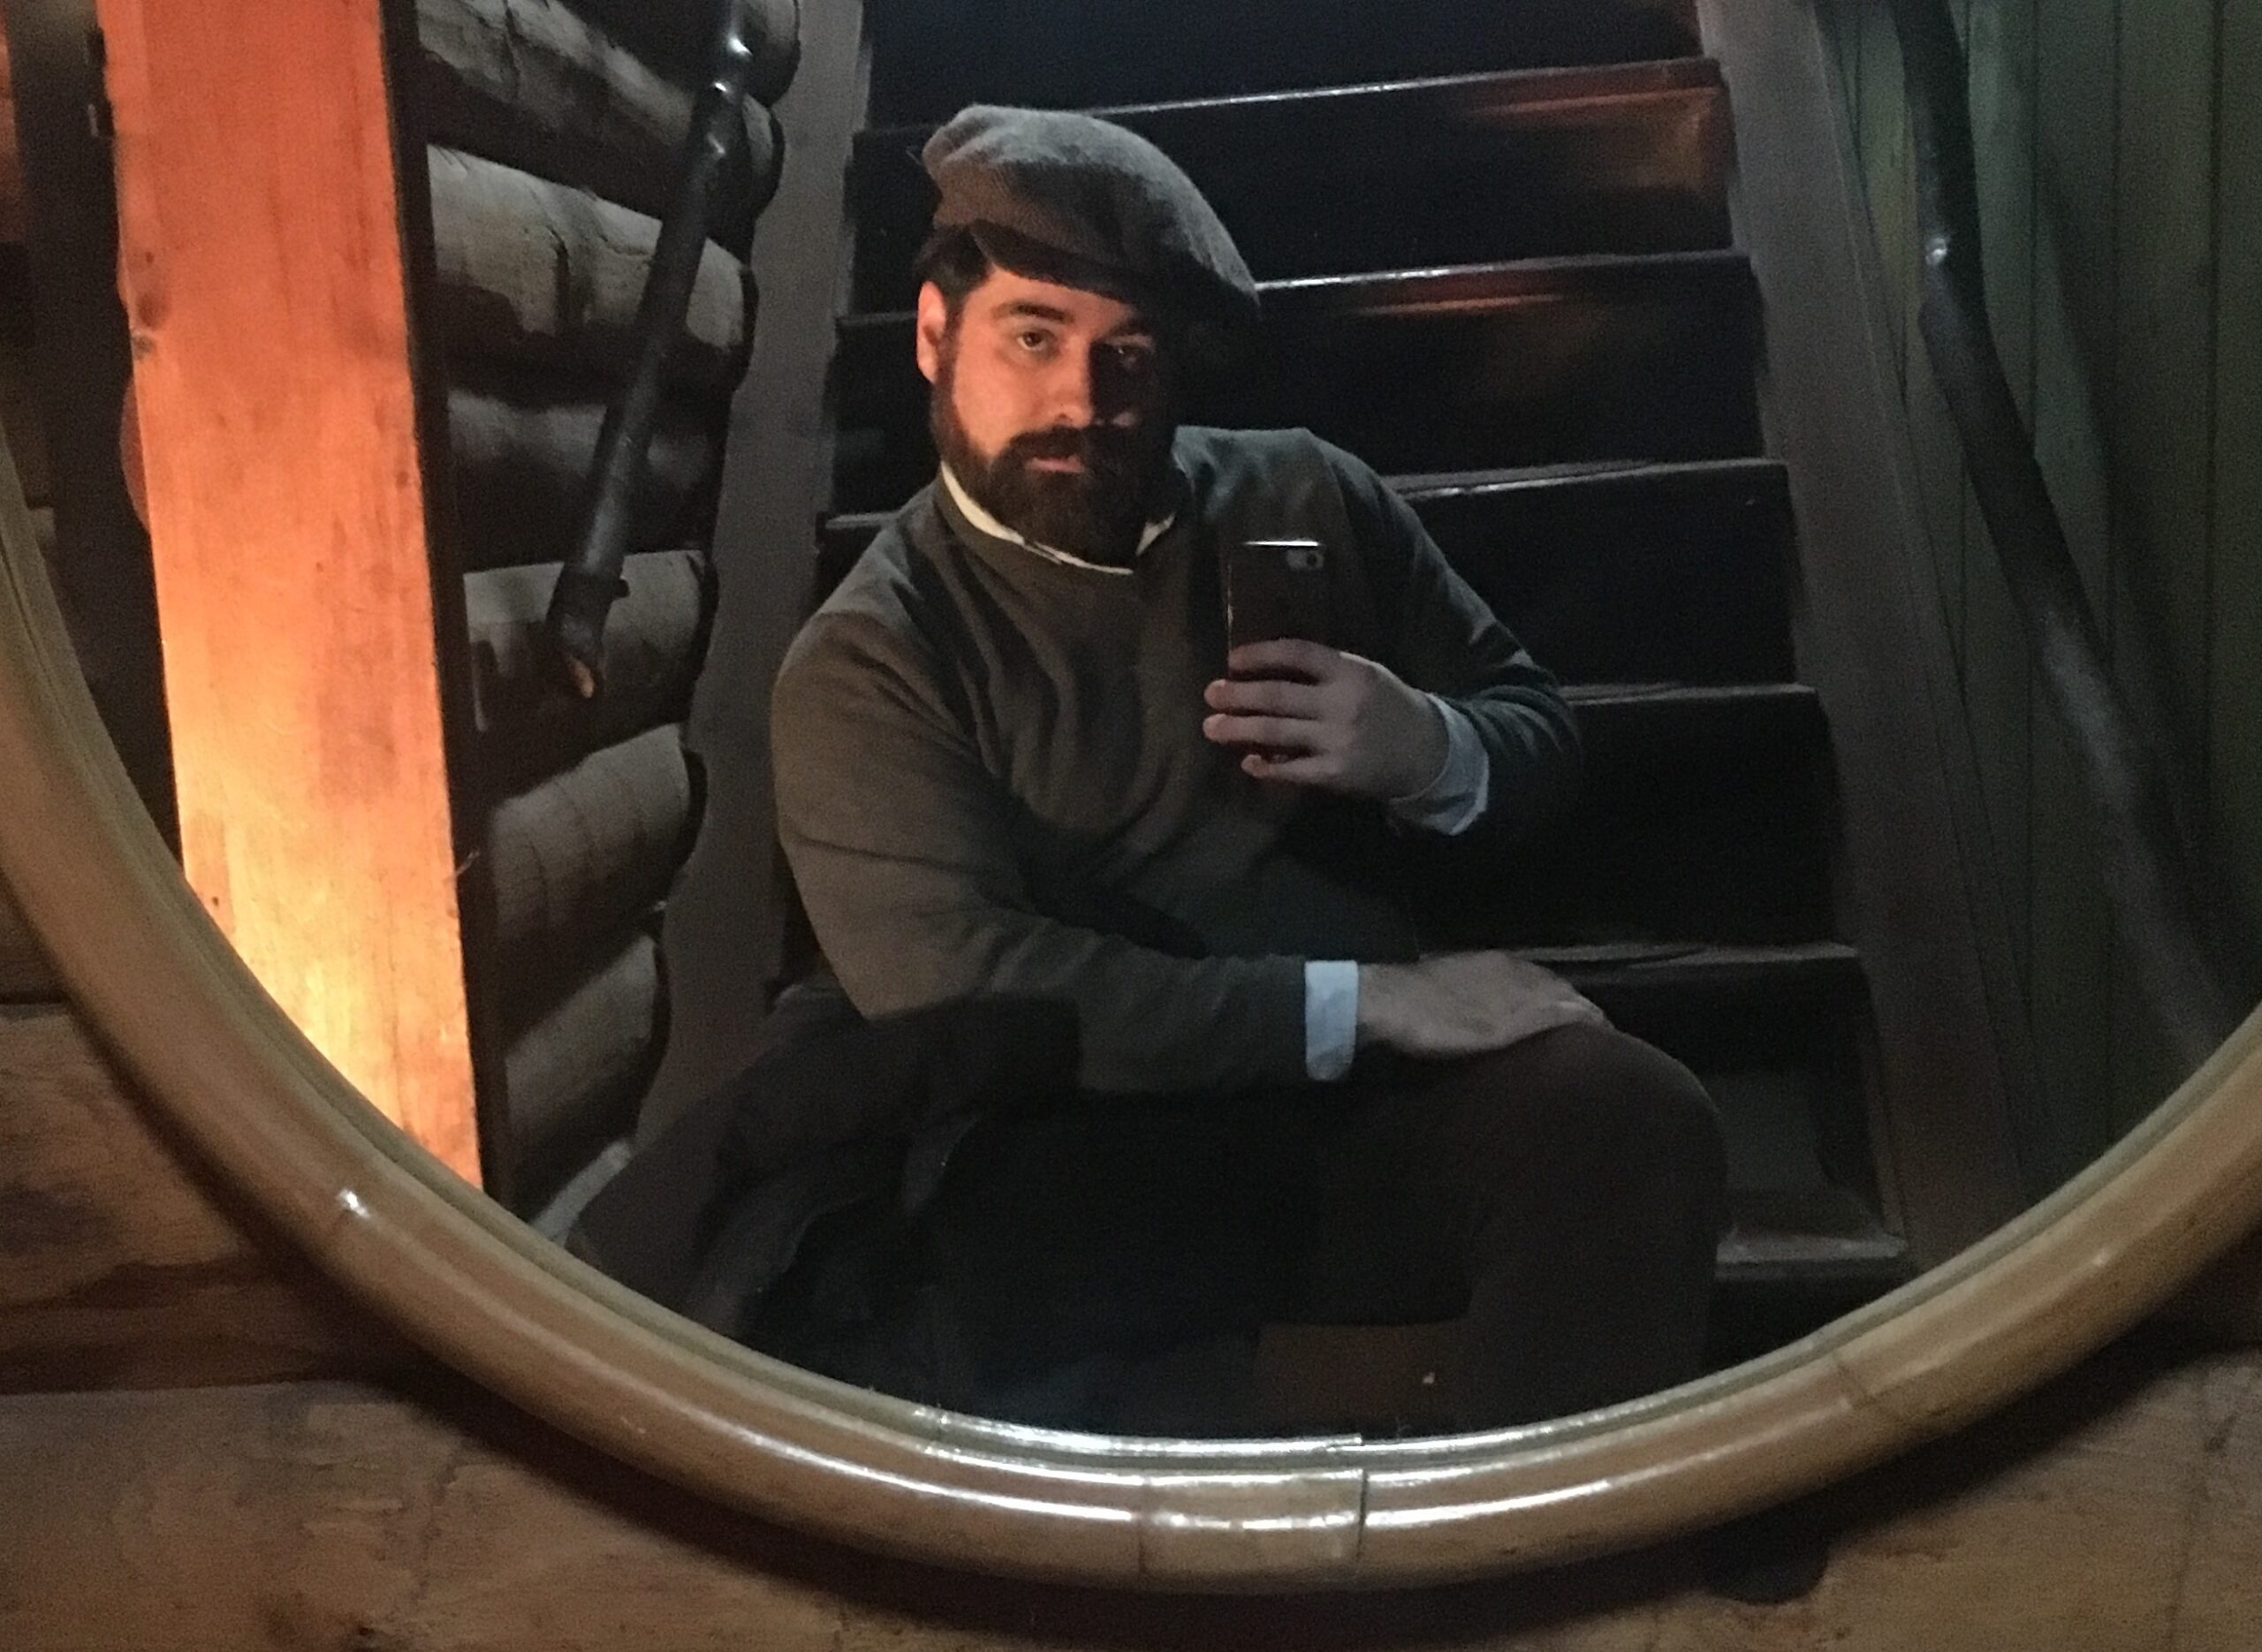 Sean Dermond taking a mirror selfie on set in front of a large oval mirror, wearing a hat and warm clothing.